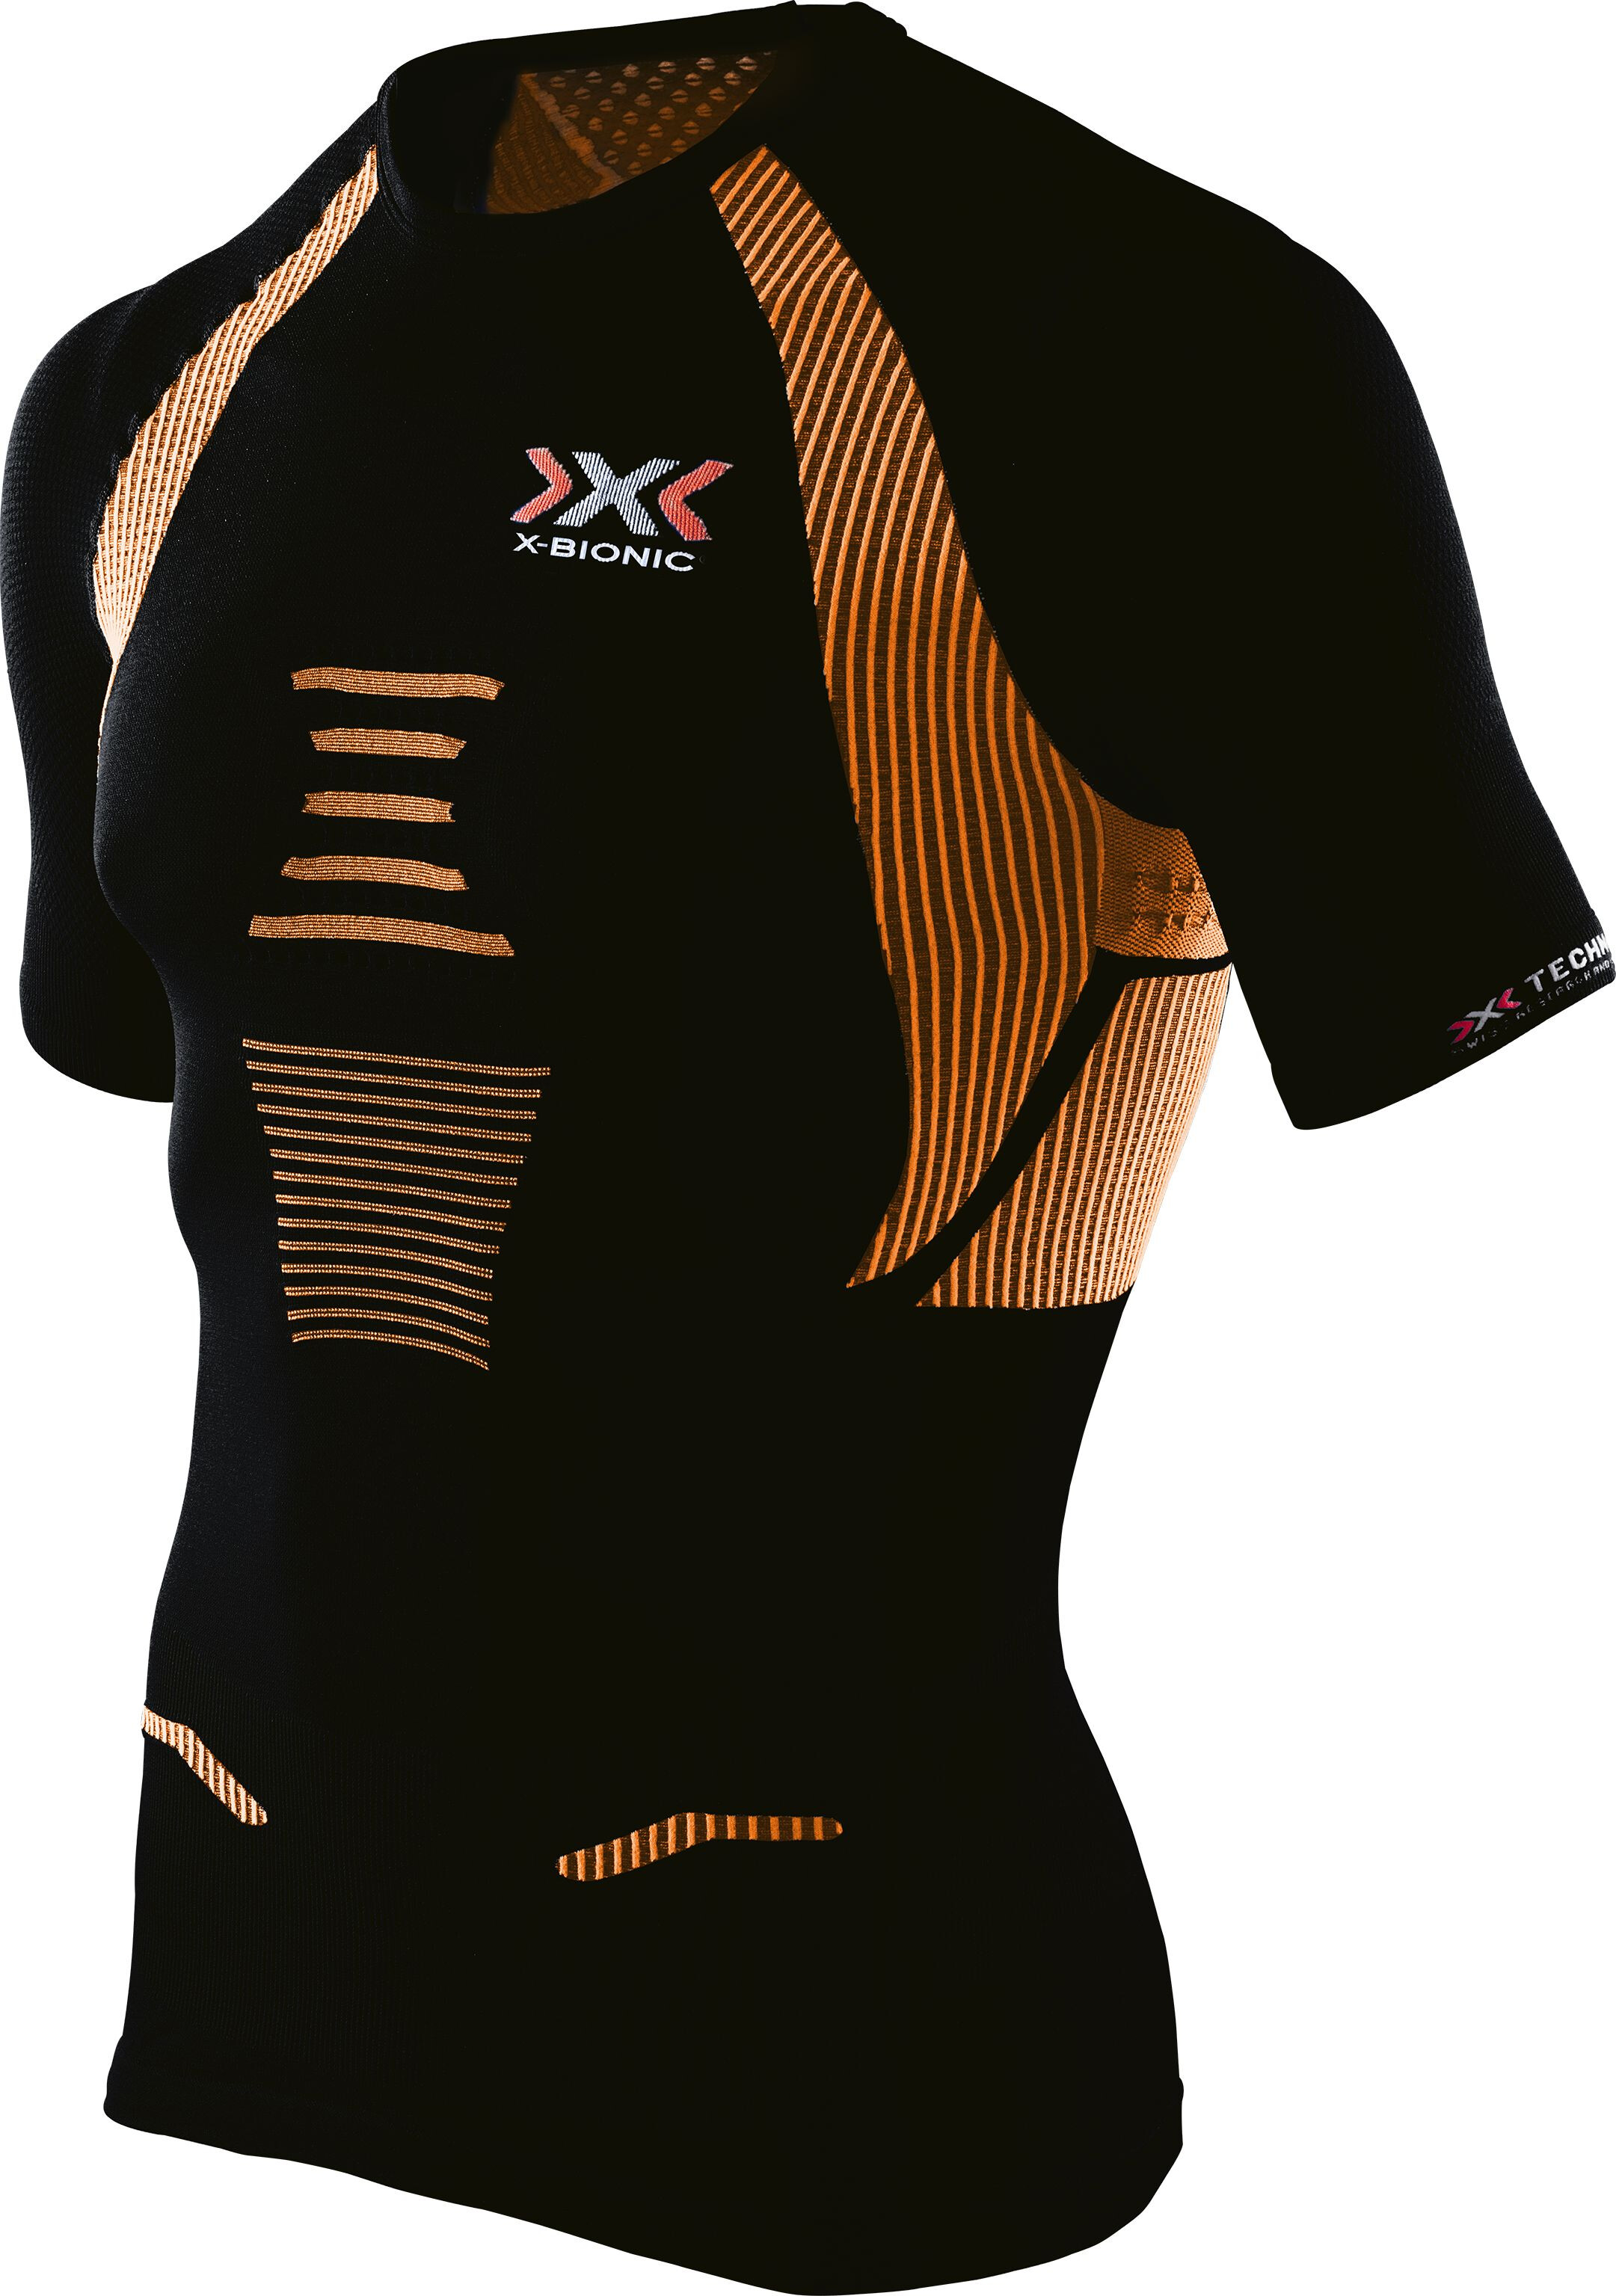 x bionic the trick running shirt ss men black orange shiny. Black Bedroom Furniture Sets. Home Design Ideas